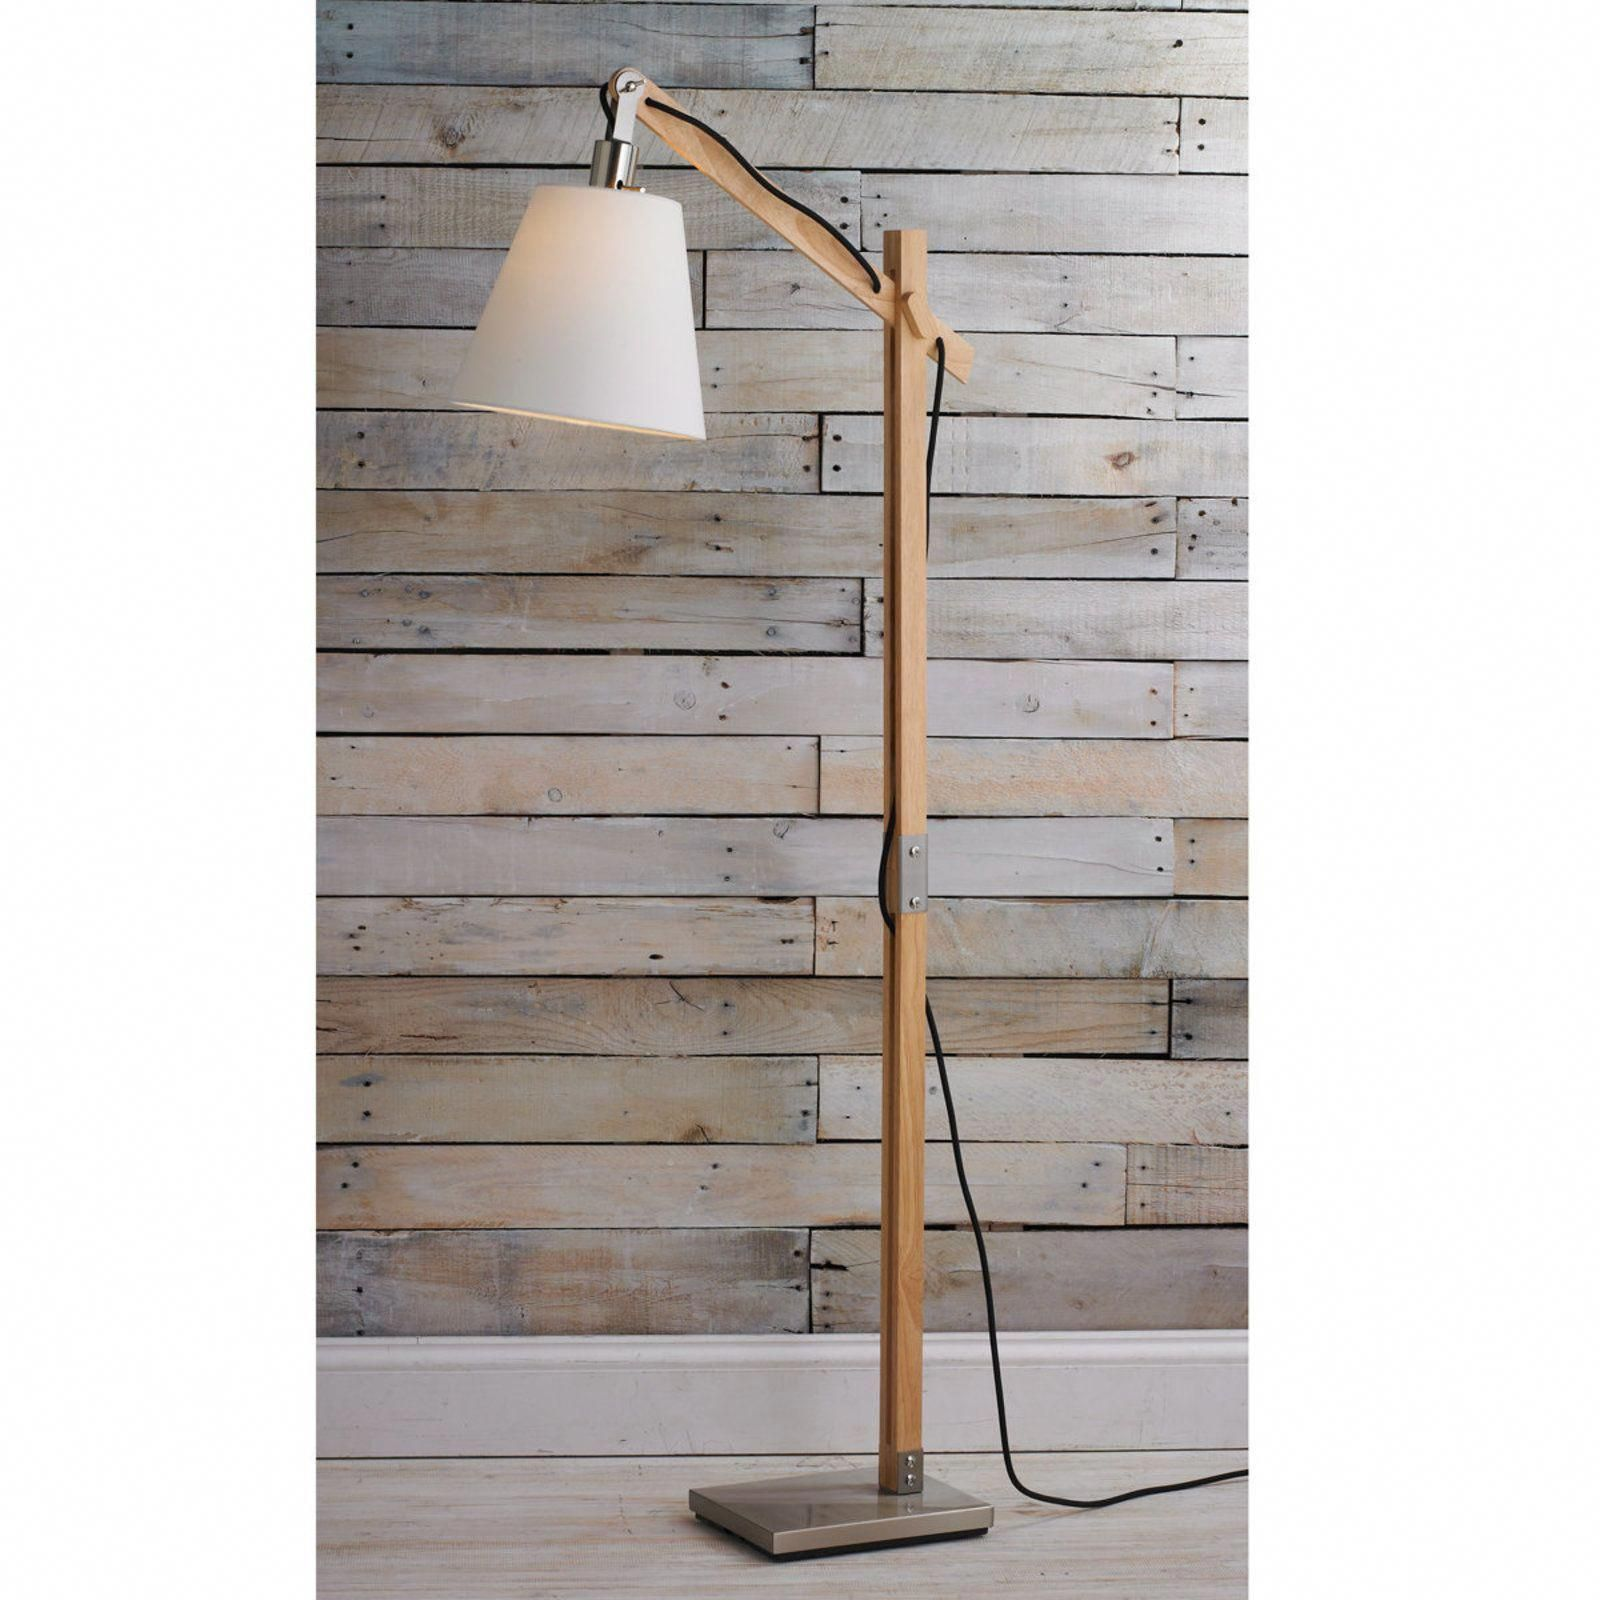 Modern Rustic Wood Arc Floor Lamp Rustic Floor Lamps Wooden